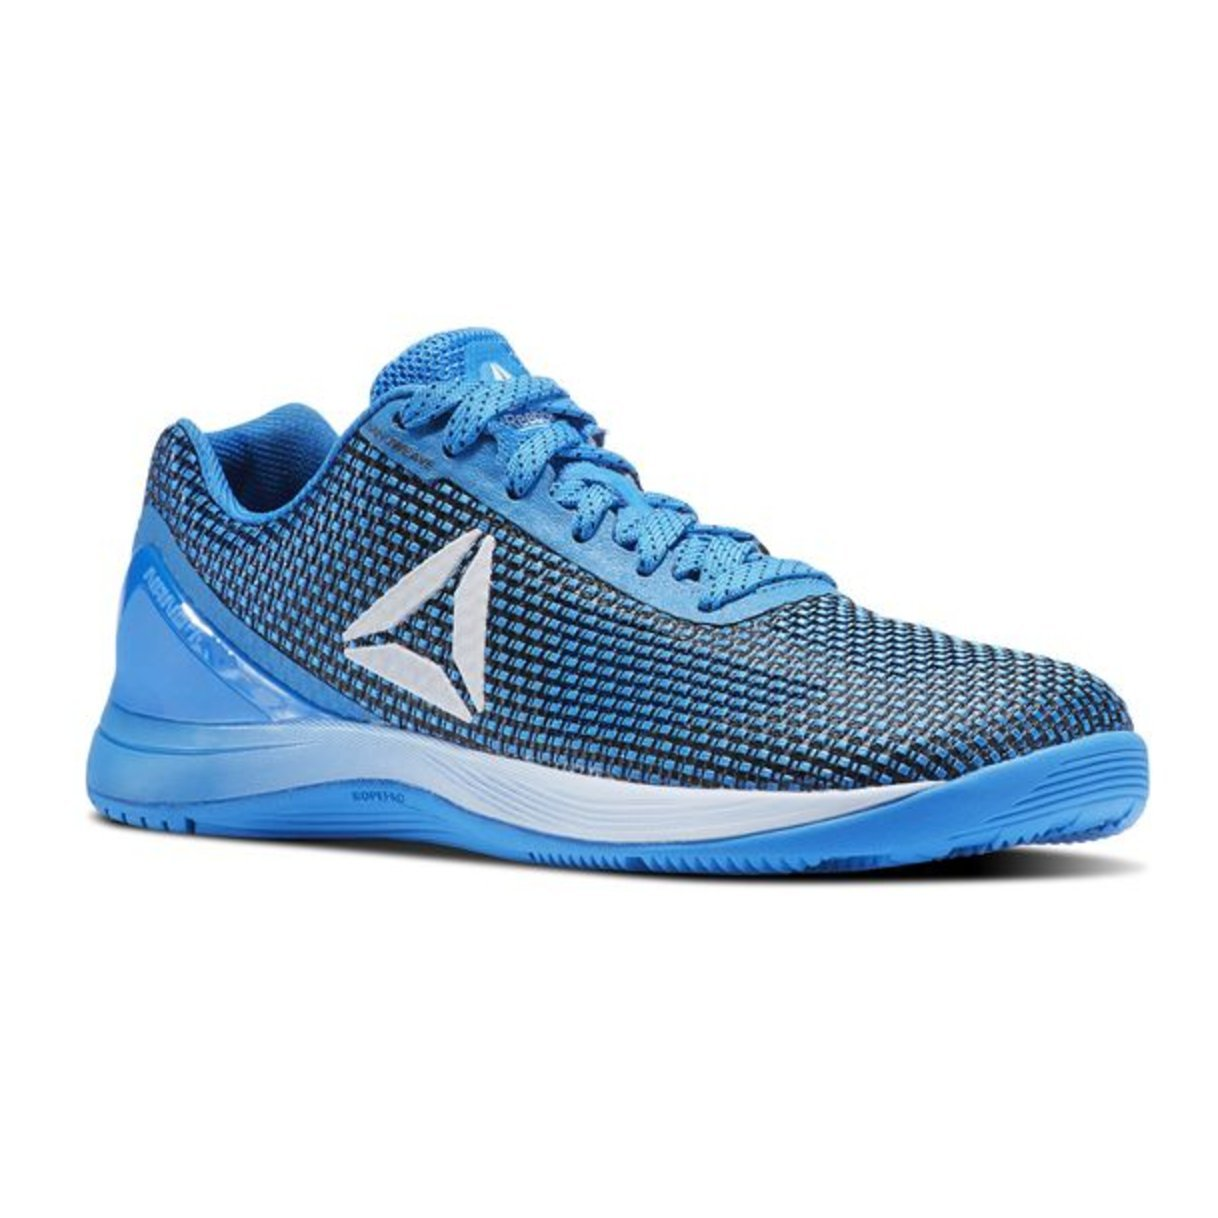 Reebok Women's Crossfit Nano 7.0 Track Shoe B076C787SX 5.5 B(M) US|Blue/Black/Silver/White